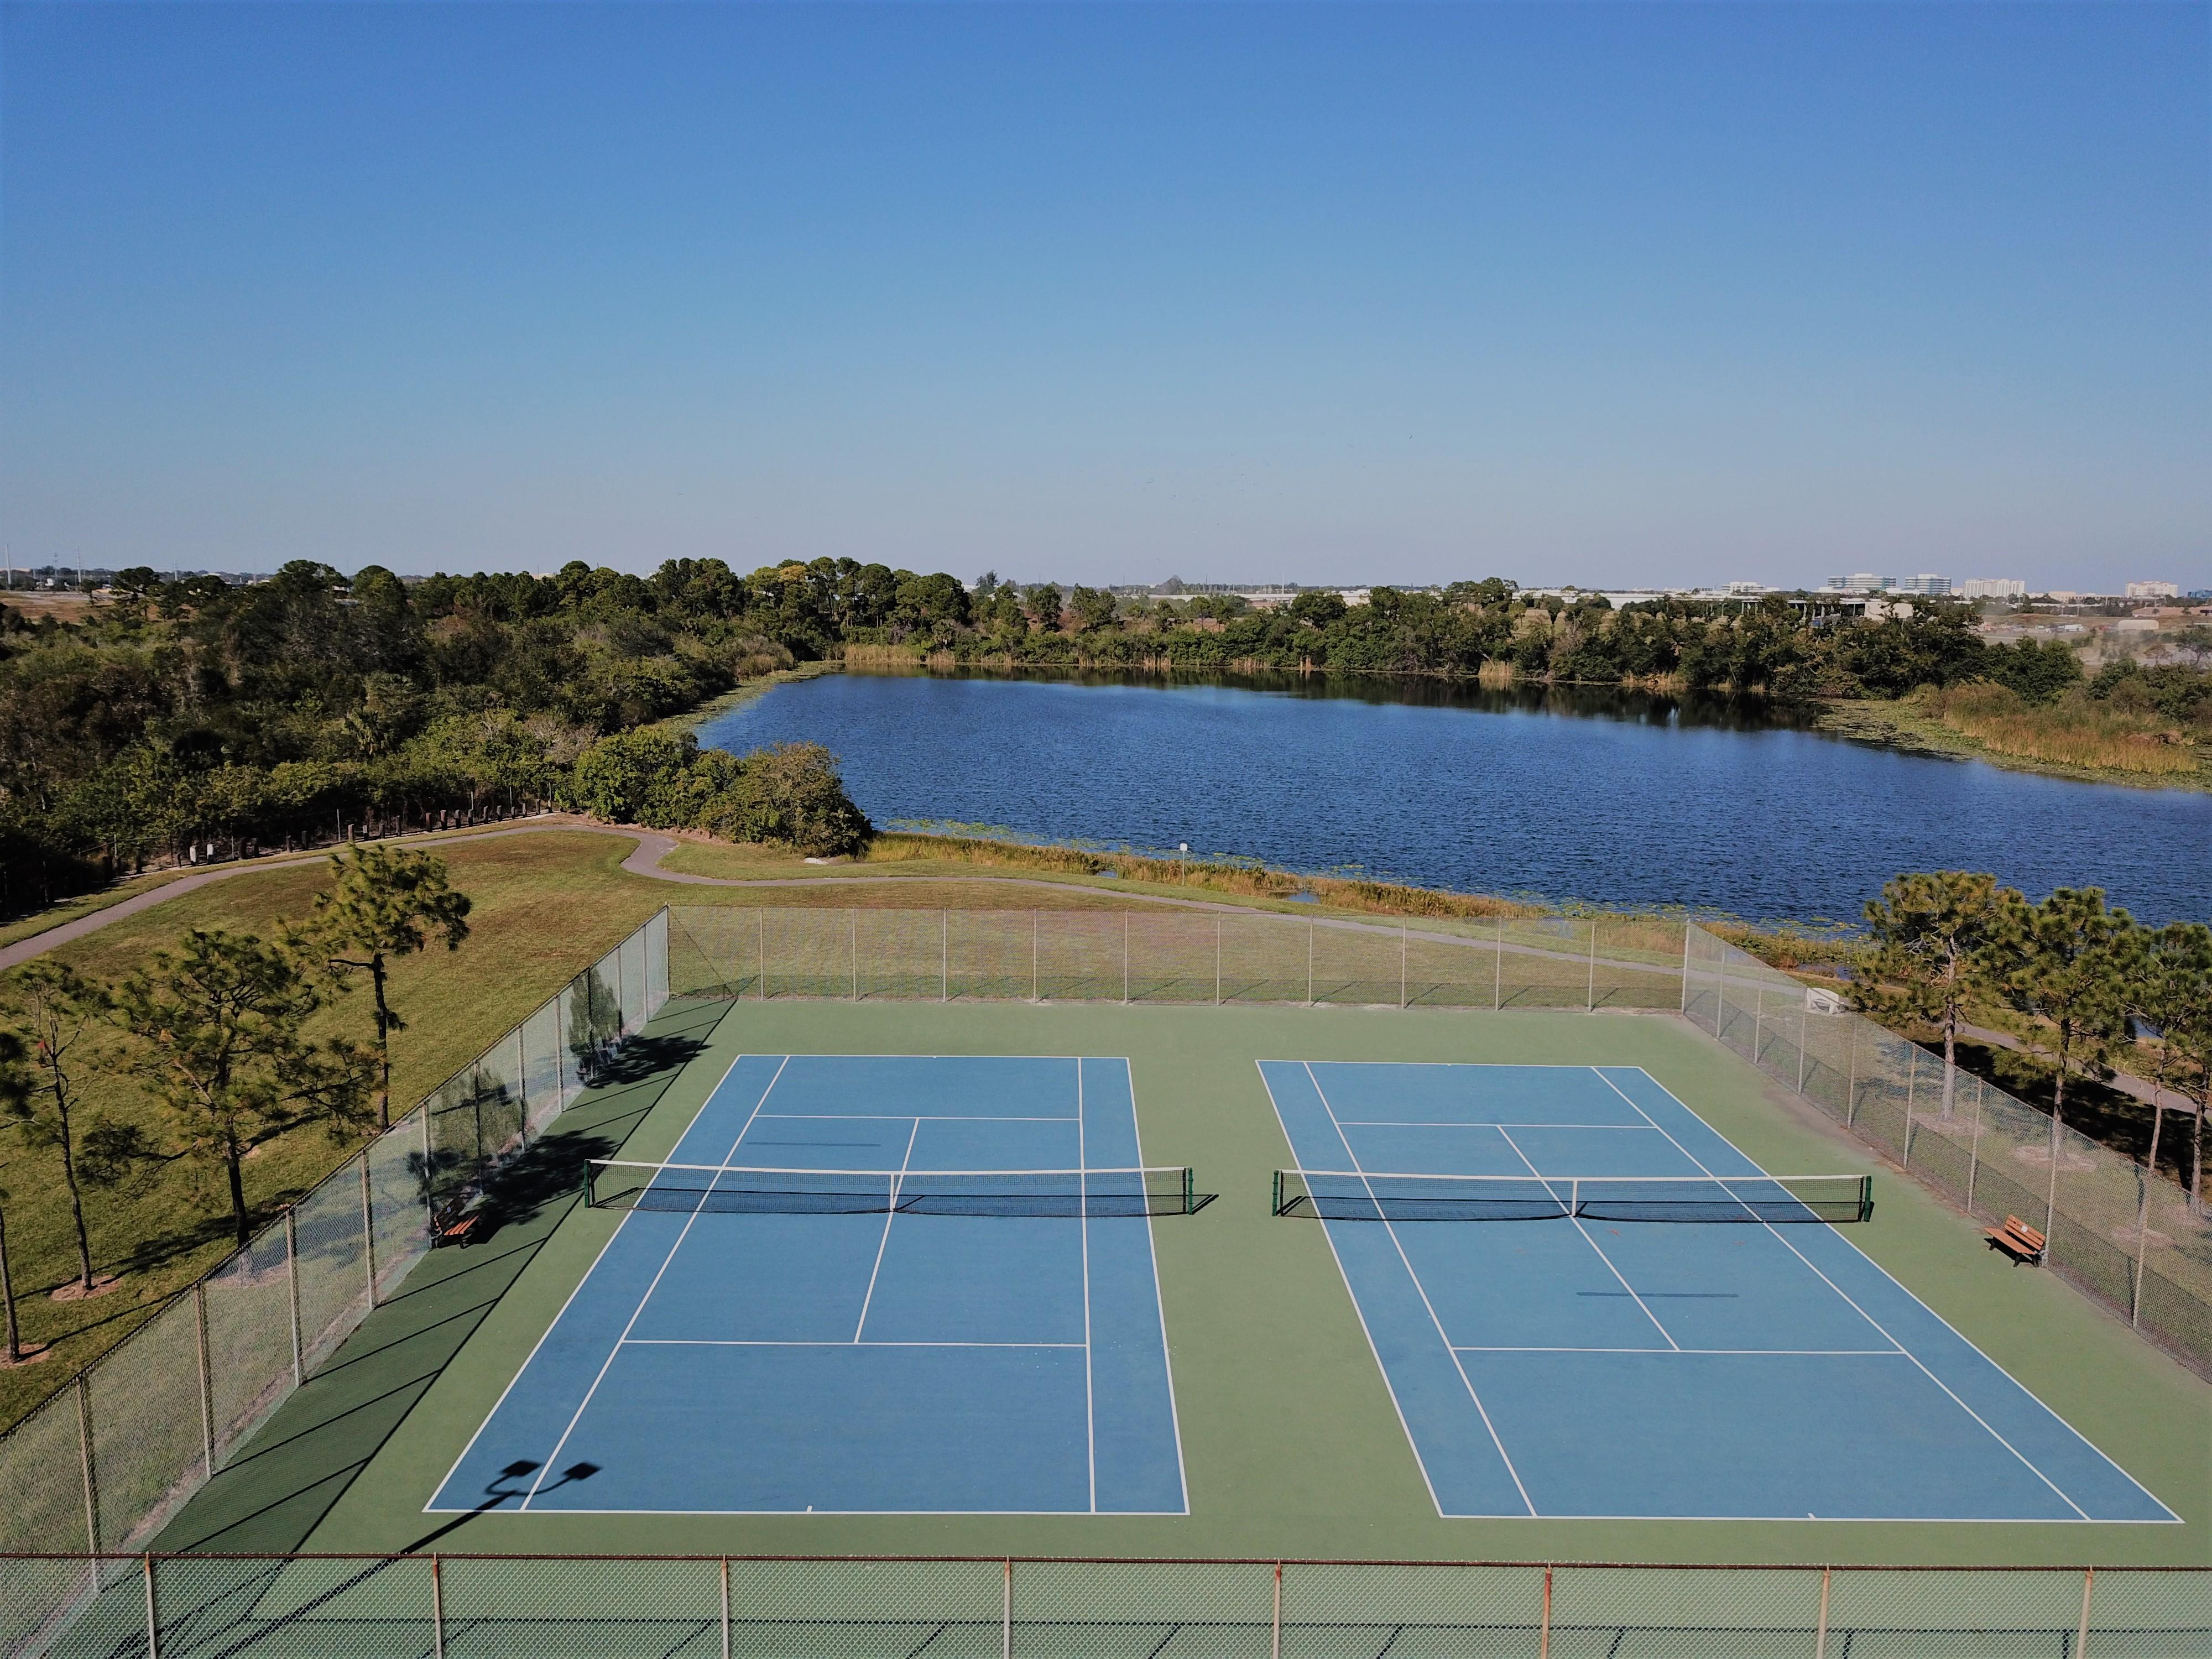 Tennis courts in The Lakes in Pinellas Park